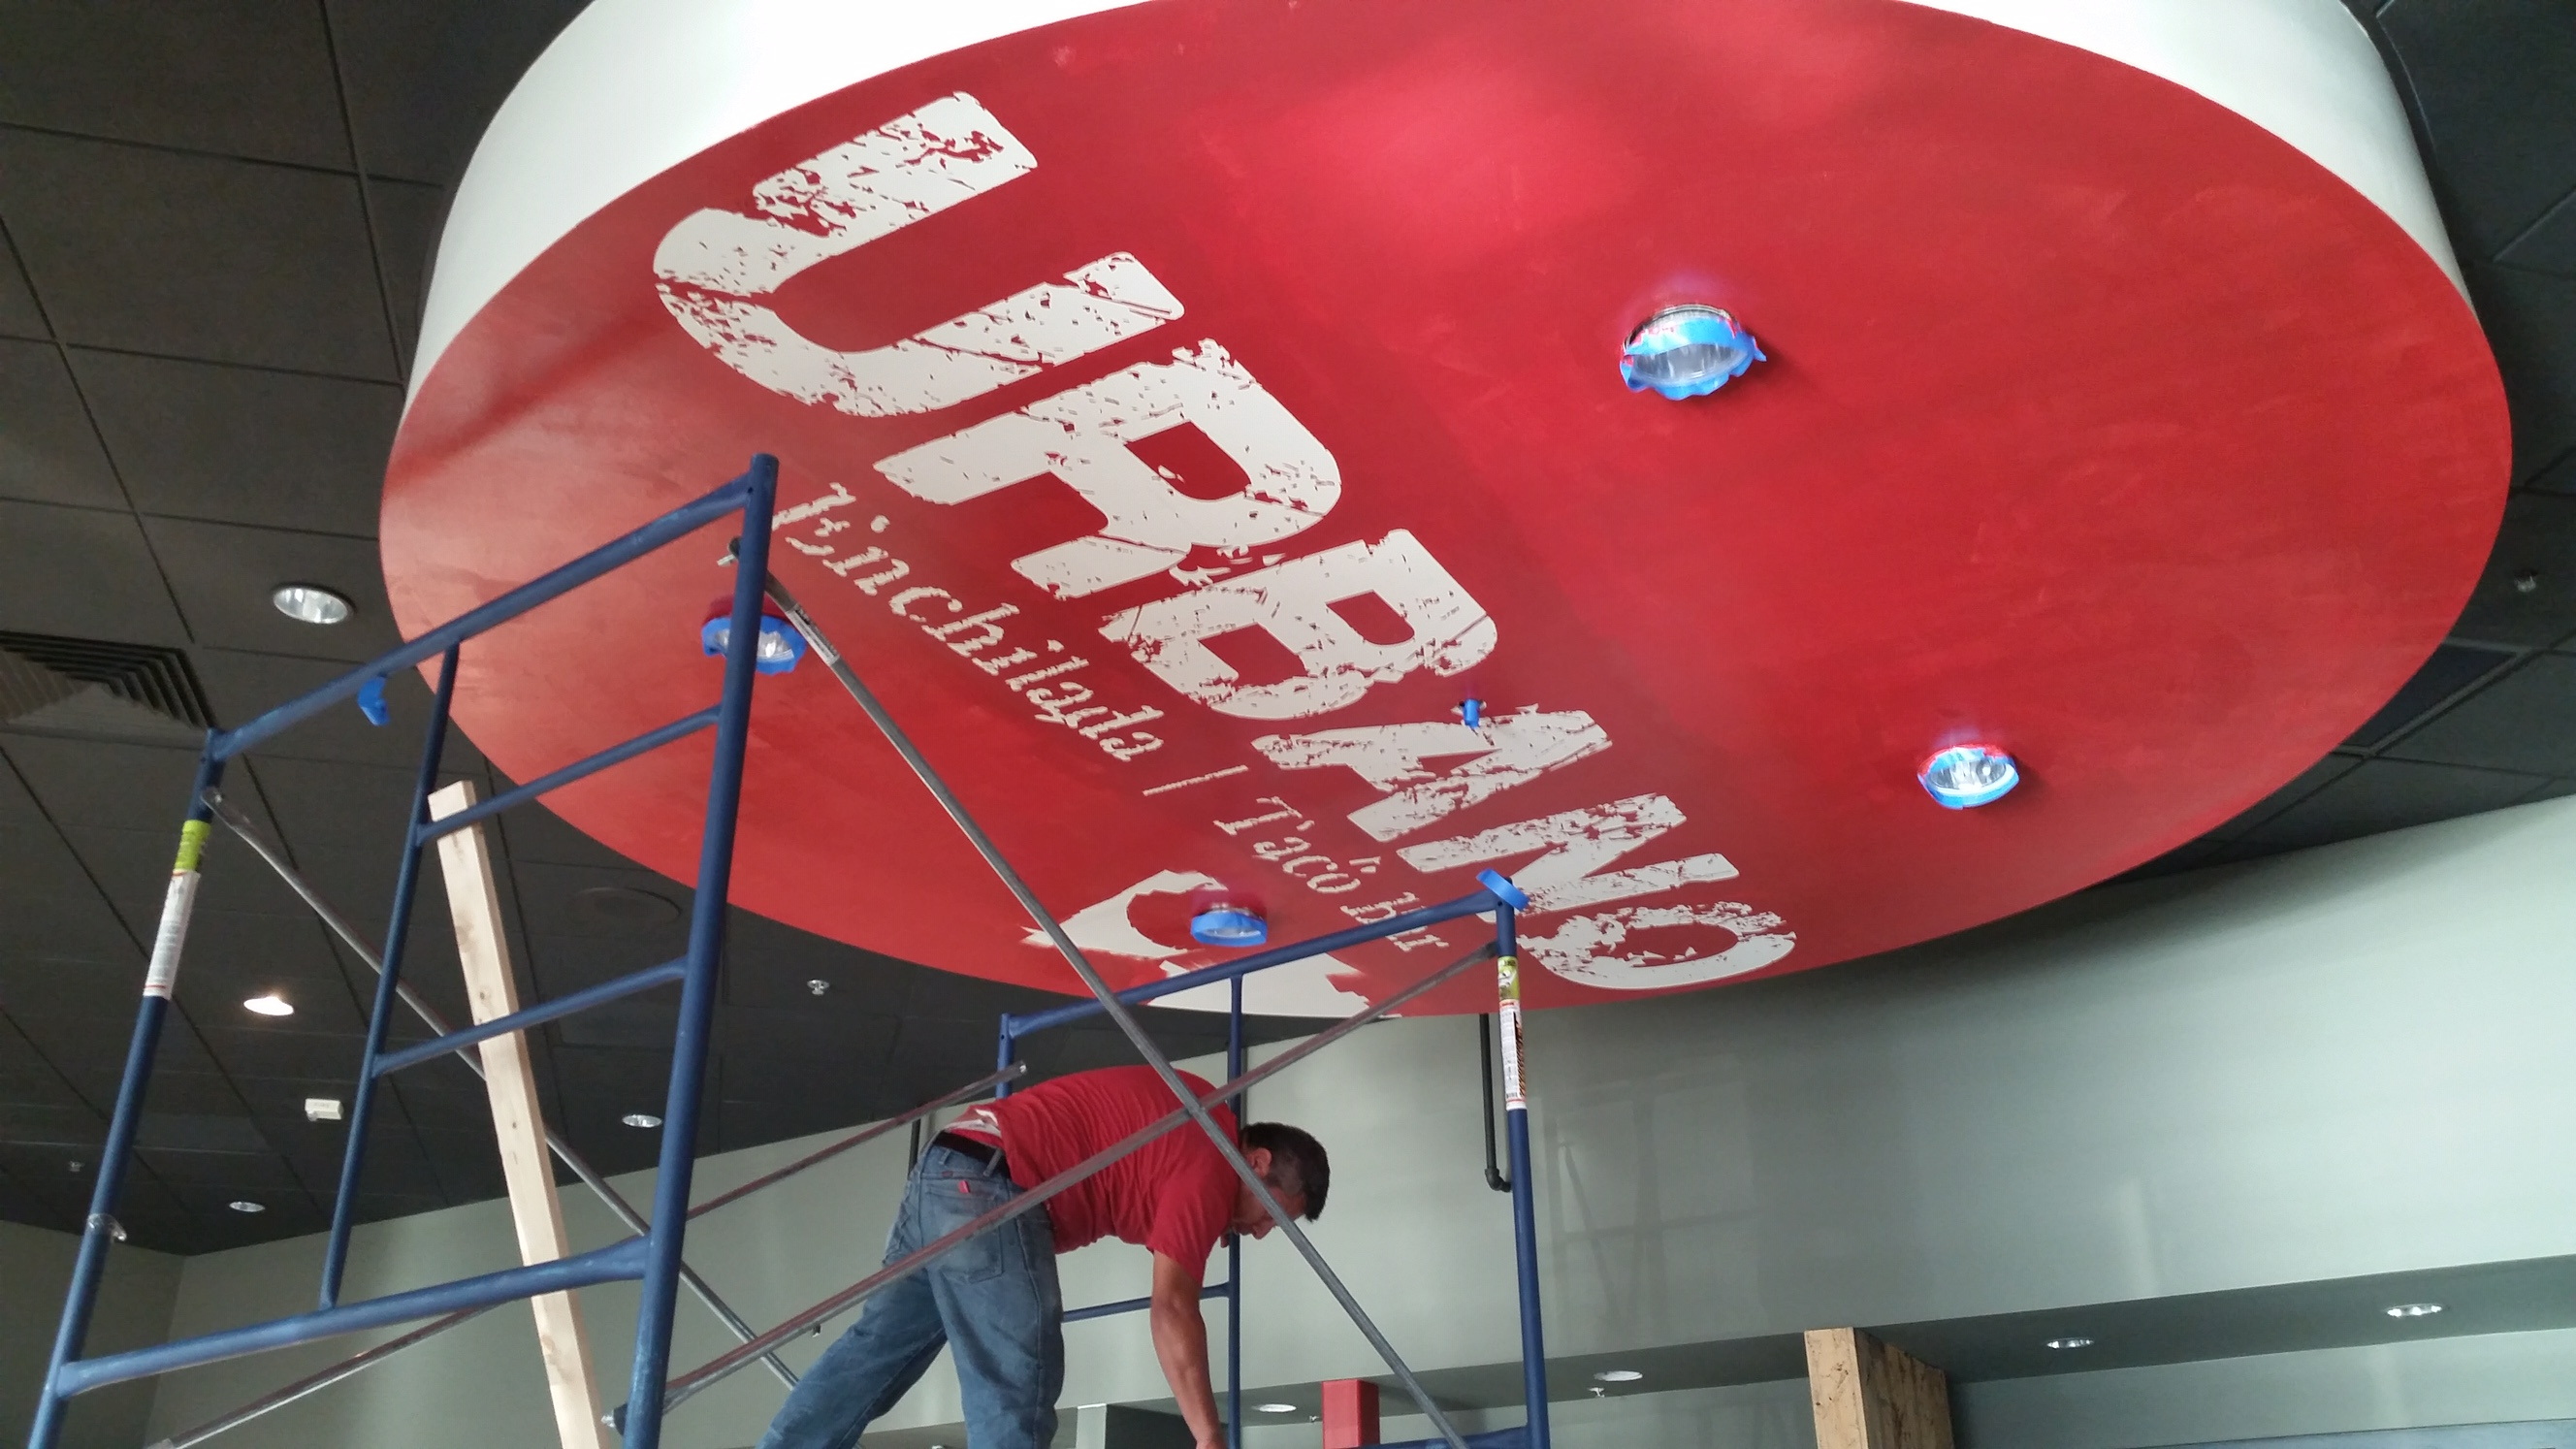 Hand painted ceiling and wall logo graphics